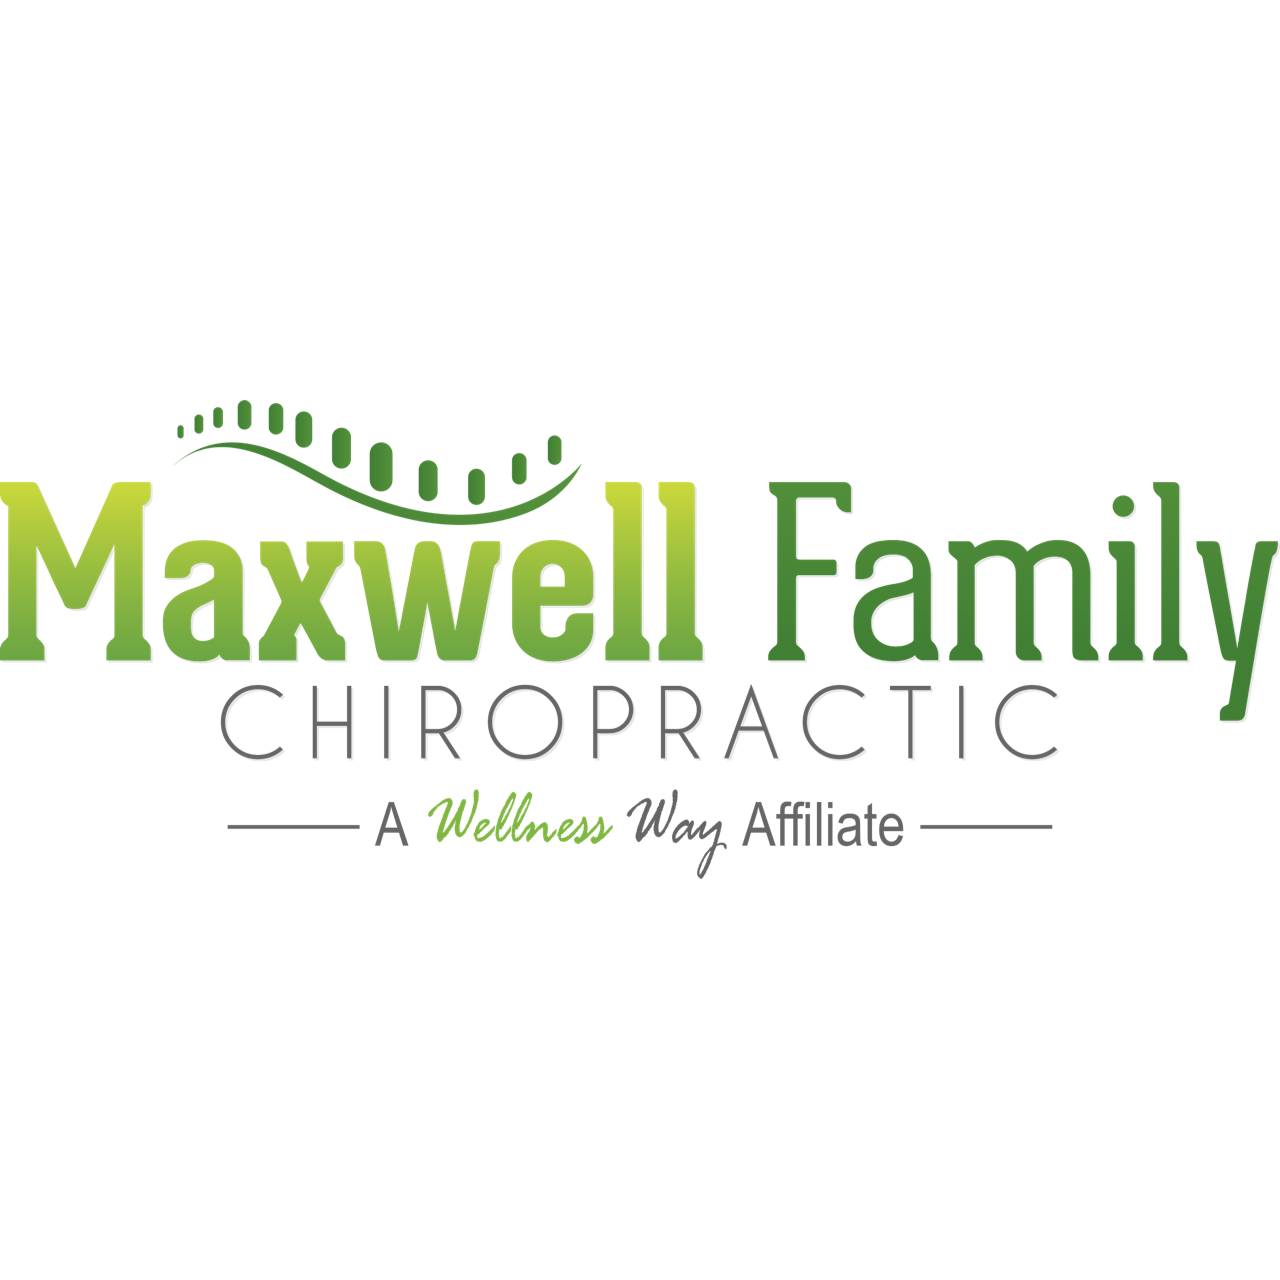 Maxwell Family Chiropractic